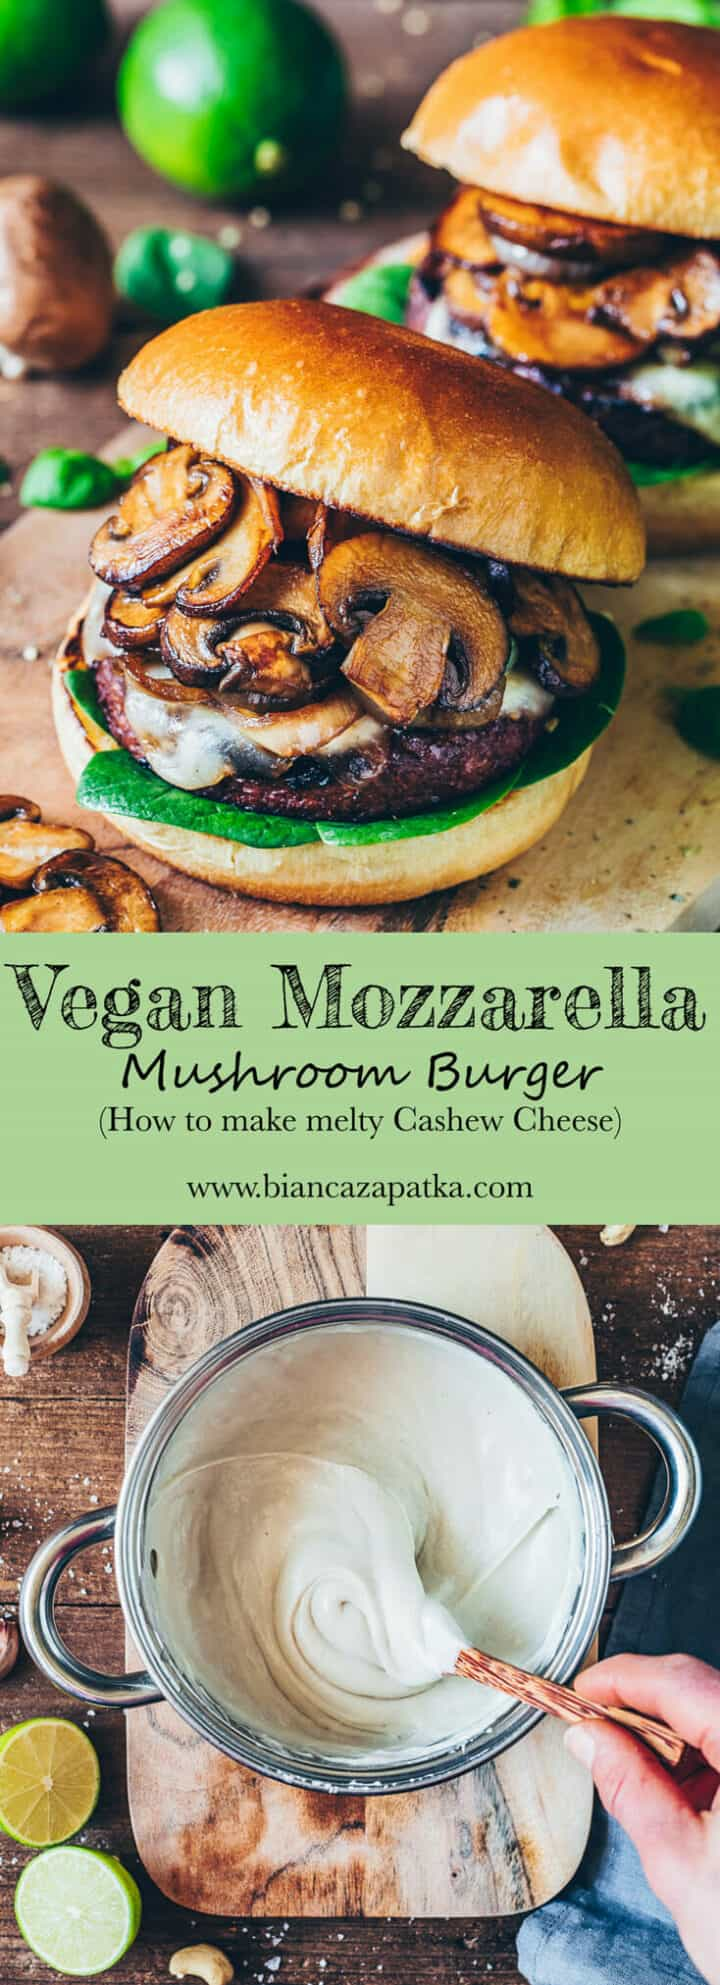 Melty Vegan Mozzarella is easy to make, perfect for gratinating and baking casserole, pizza, sandwiches, mushroom burger. Stretchy cashew mozzarella is dairy-free cheese, gluten-free, plant-based, soy-free.